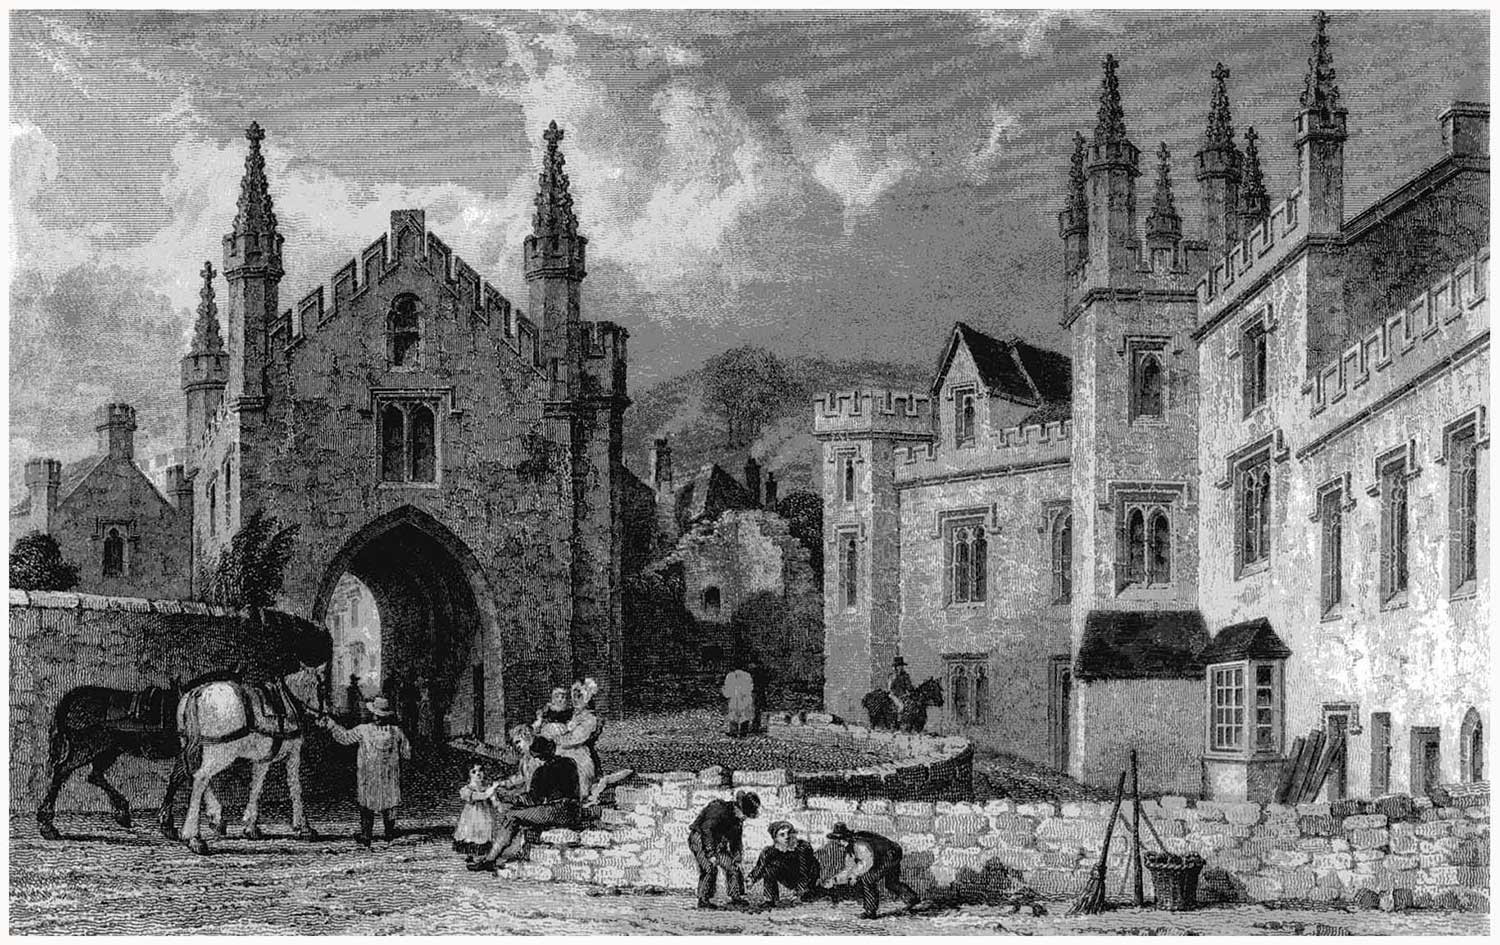 Court Gate and the Tavistock Guildhall, c. 1830